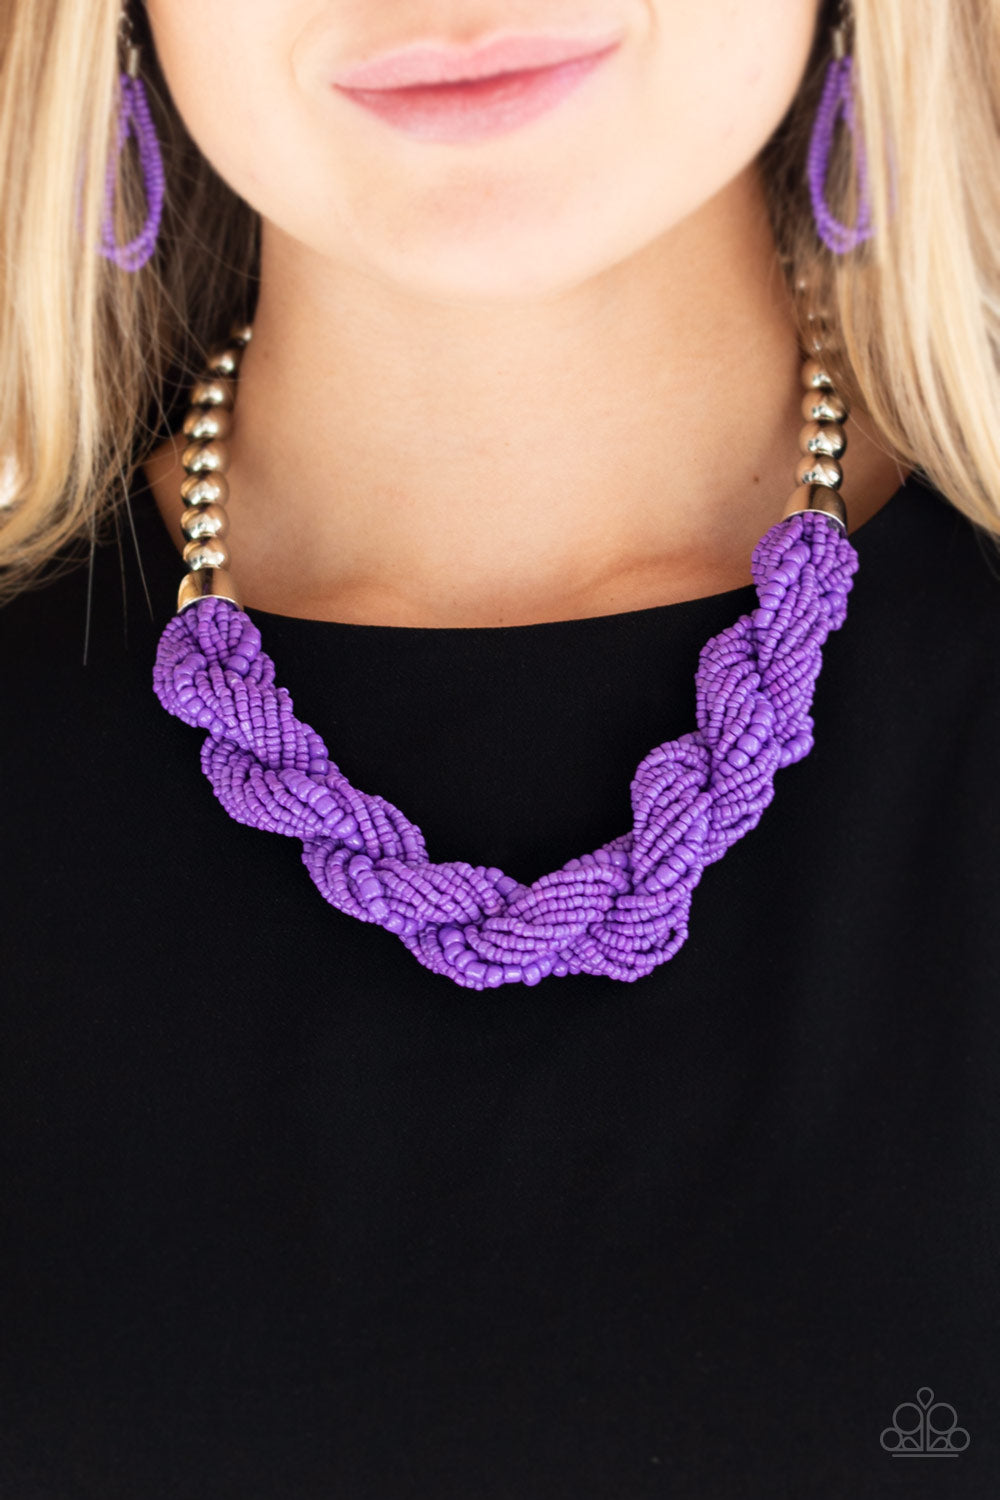 Paparazzi Jewelry & Accessories - Savannah Surfin - Purple Seed Bead Necklace. Bling By Titia Boutique